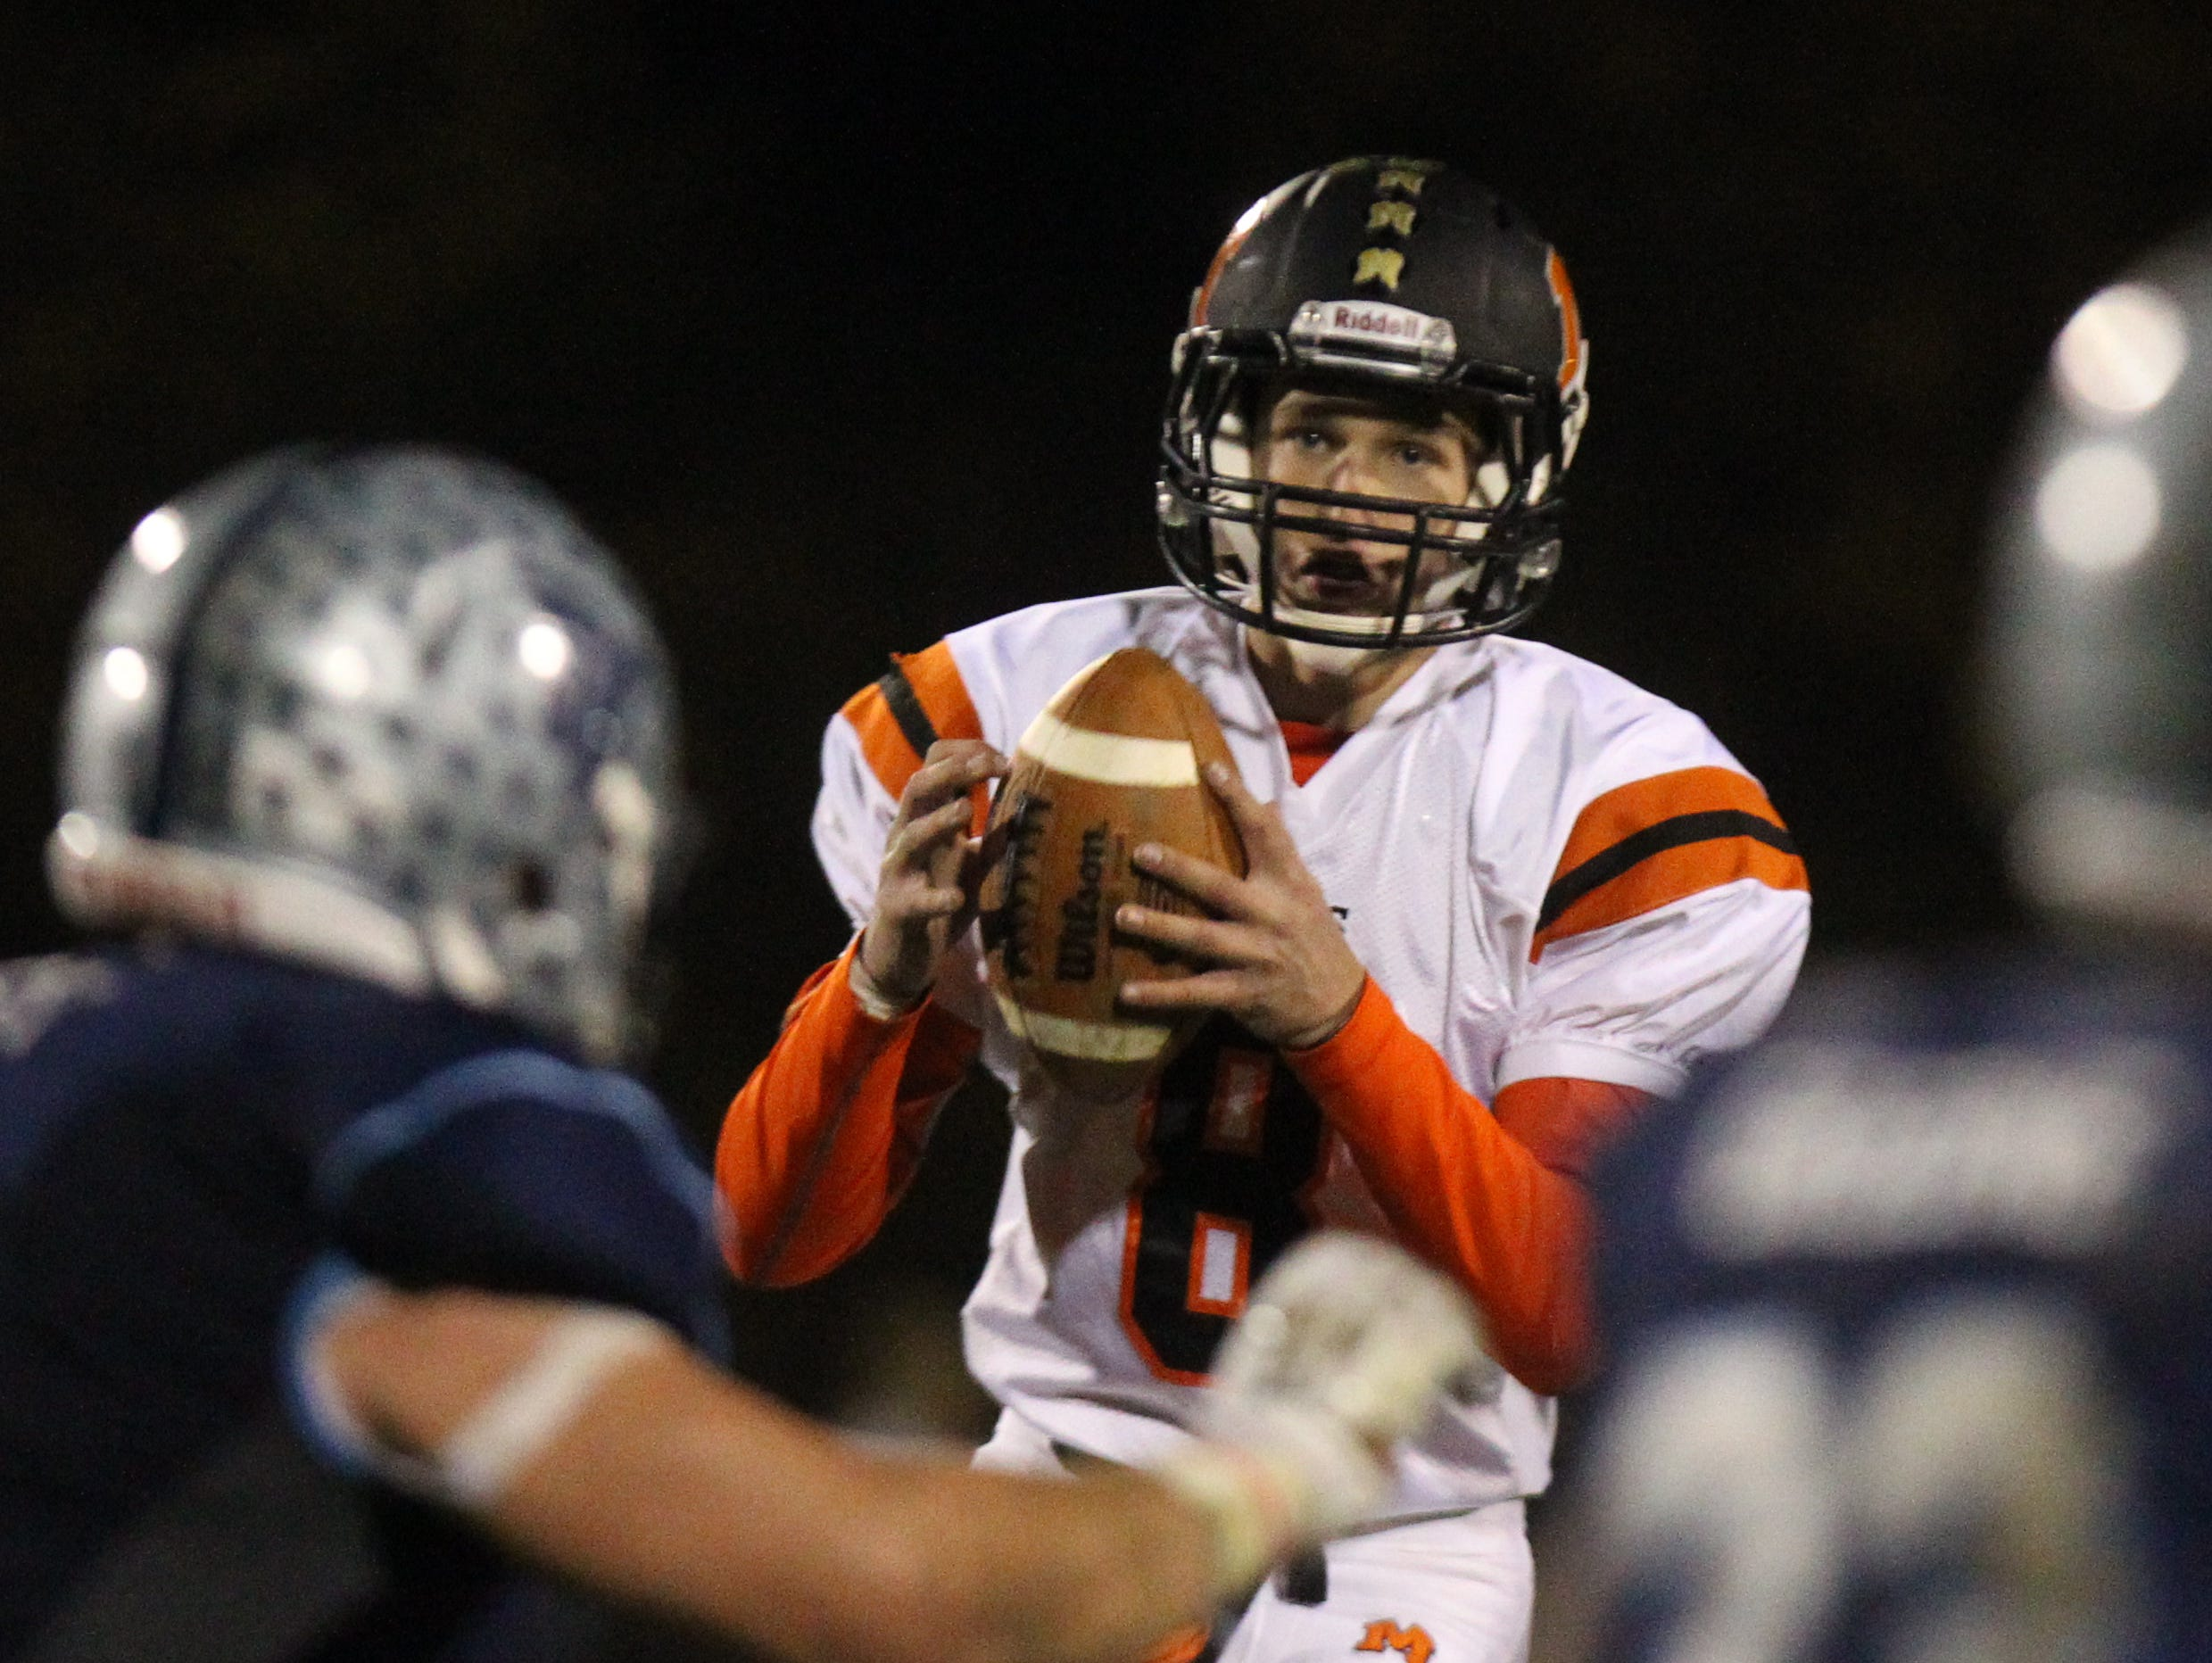 Mamaroneck's Bill Flatow suffered a shoulder sprain and missed two-plus games earlier in the season.